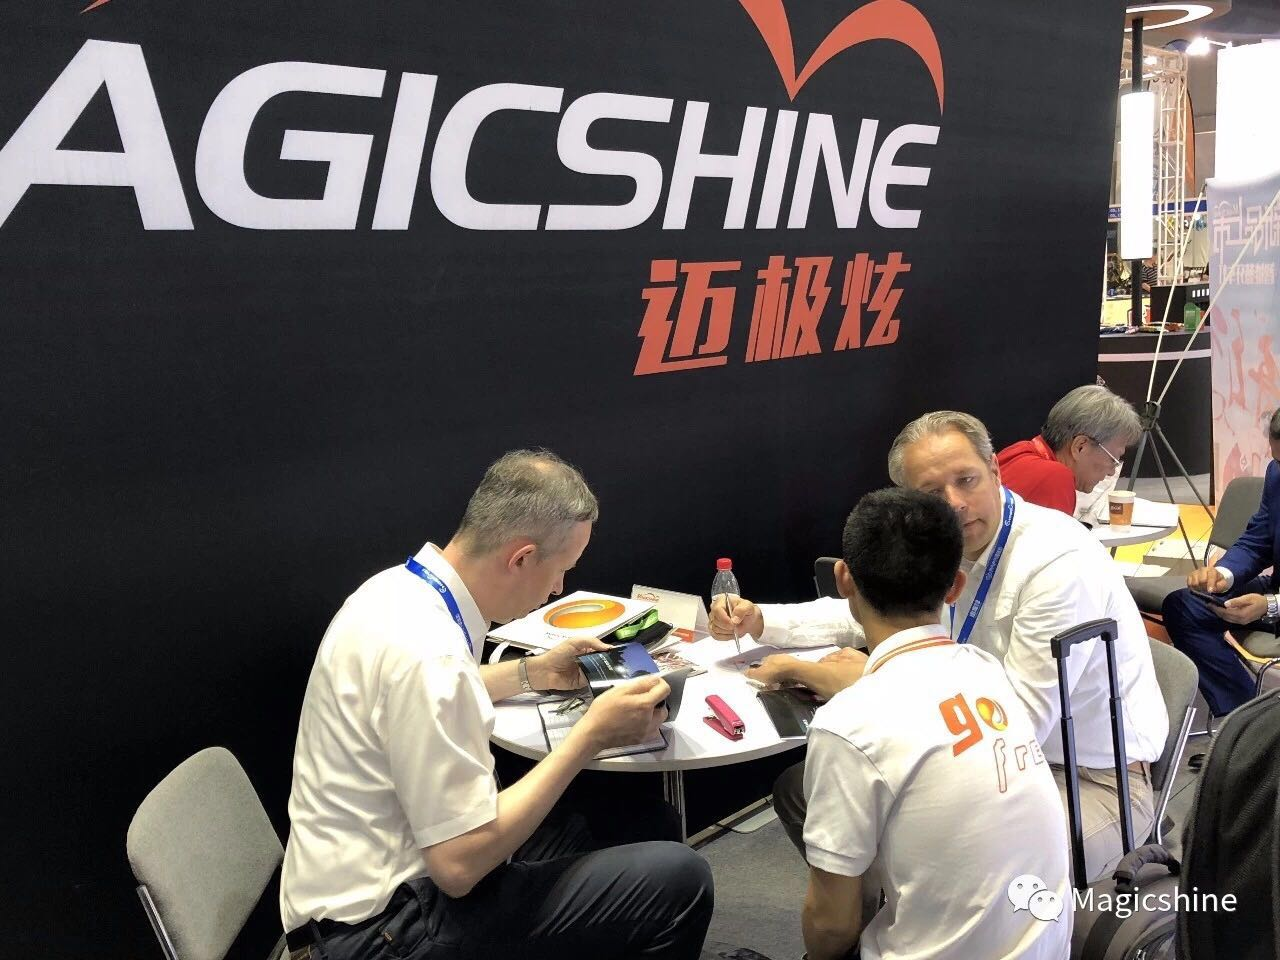 Magicshine China Bicycle Fair